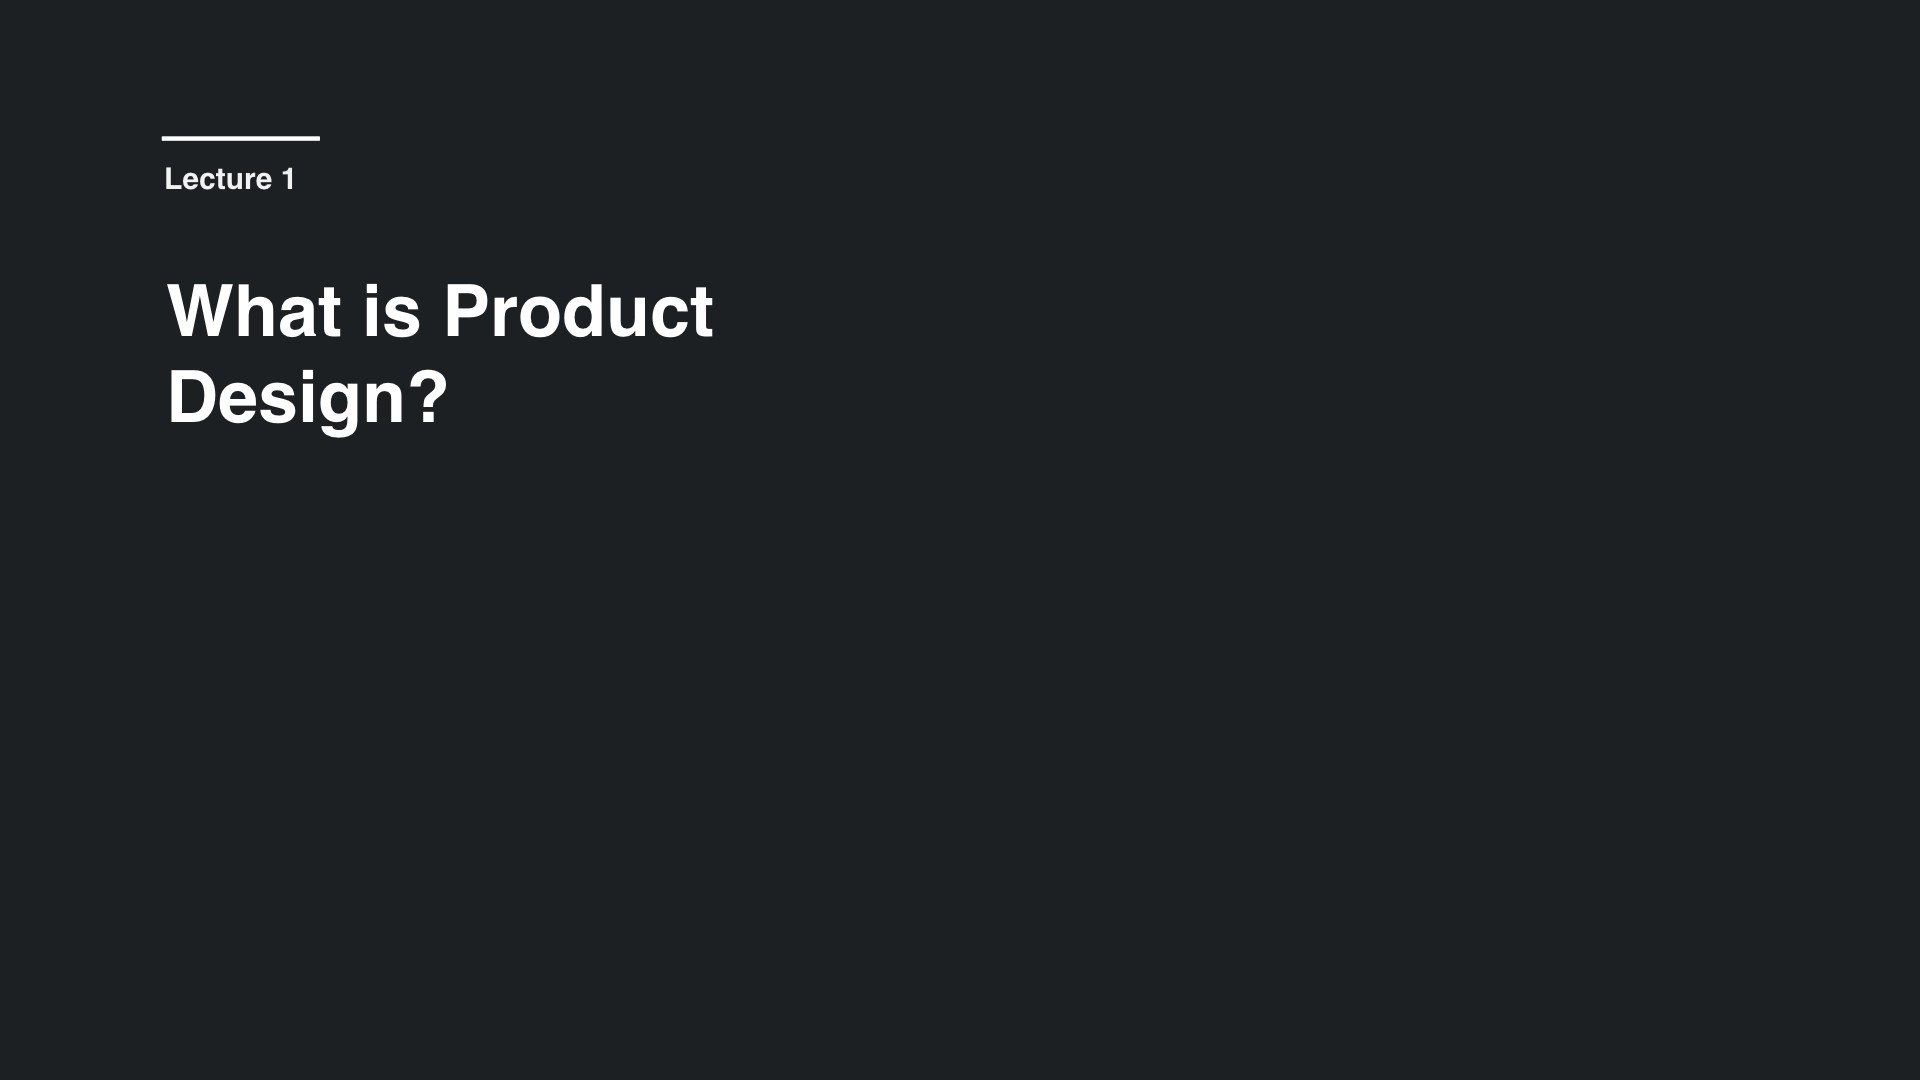 Lecture 1: What is Product Design?